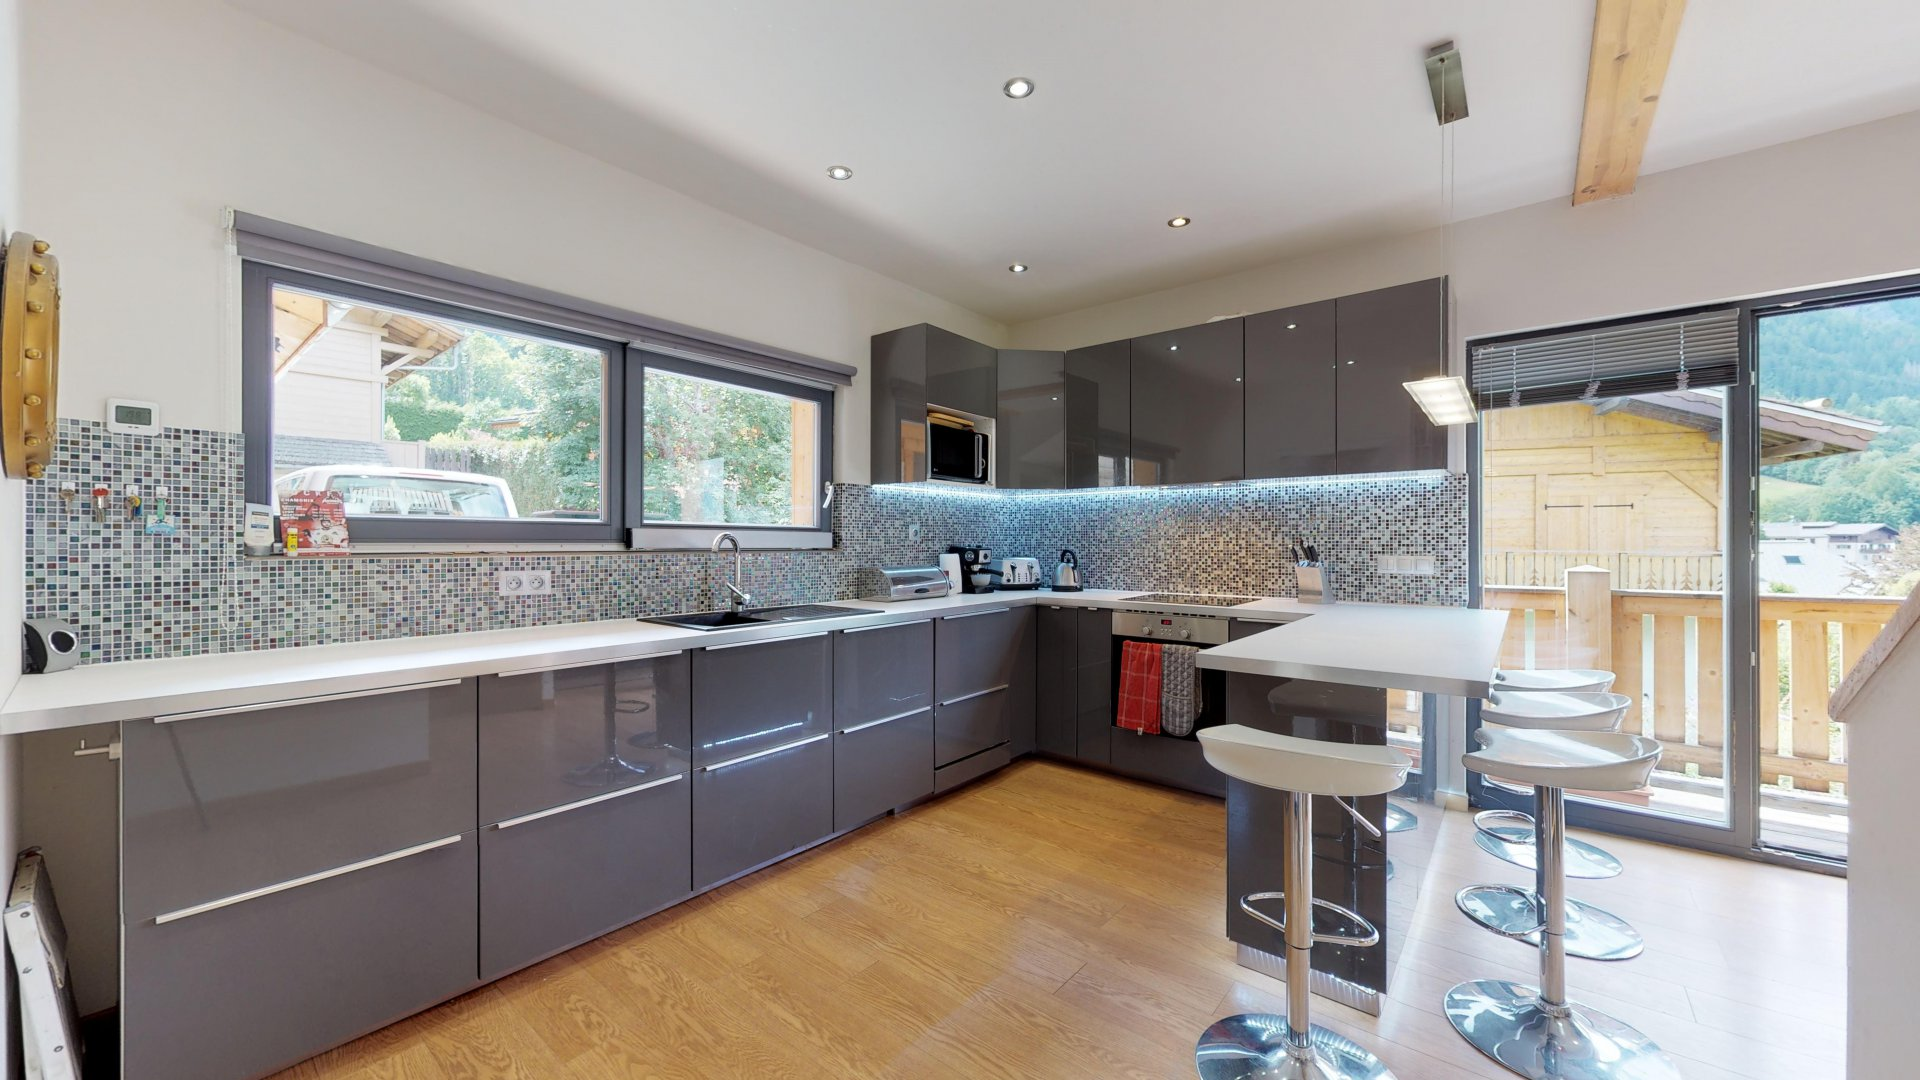 Modern kitchen, spacious, with a breakfast bar